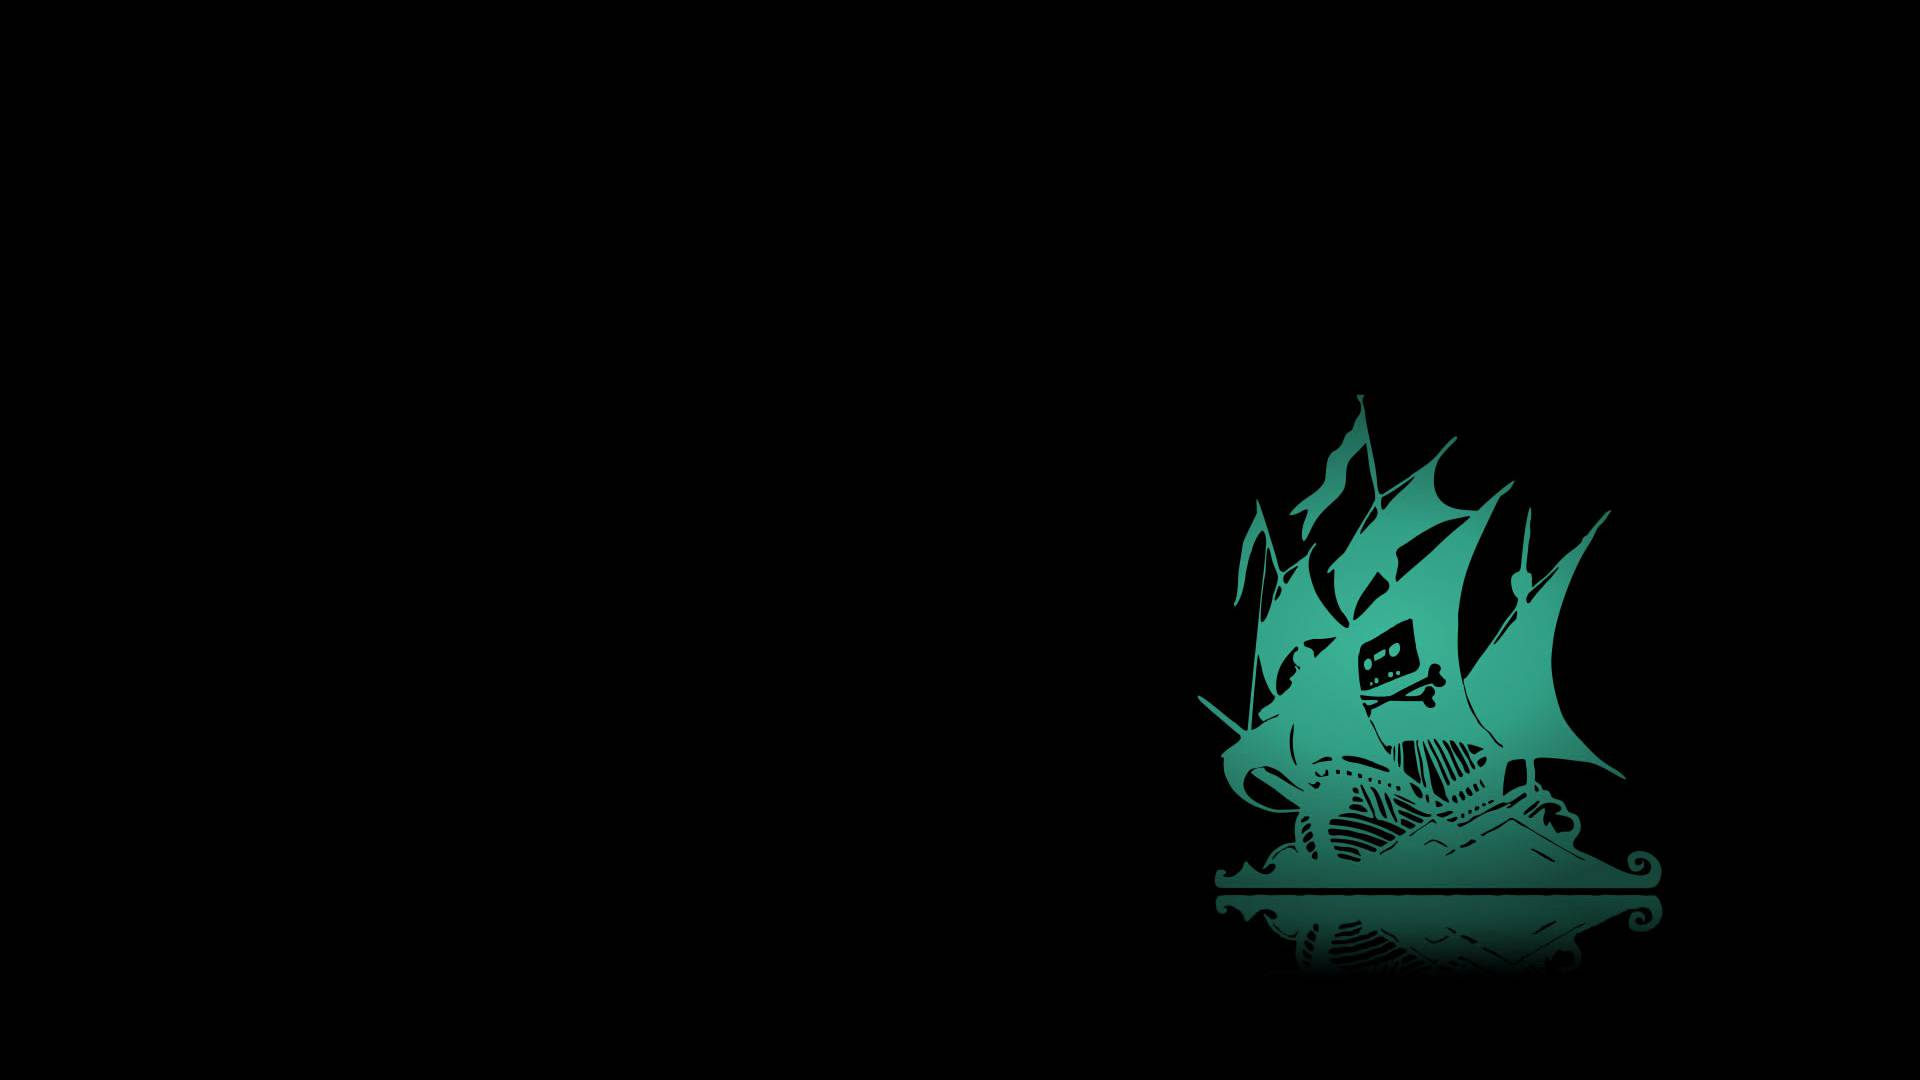 pirate wallpaper 47 wallpapers � adorable wallpapers